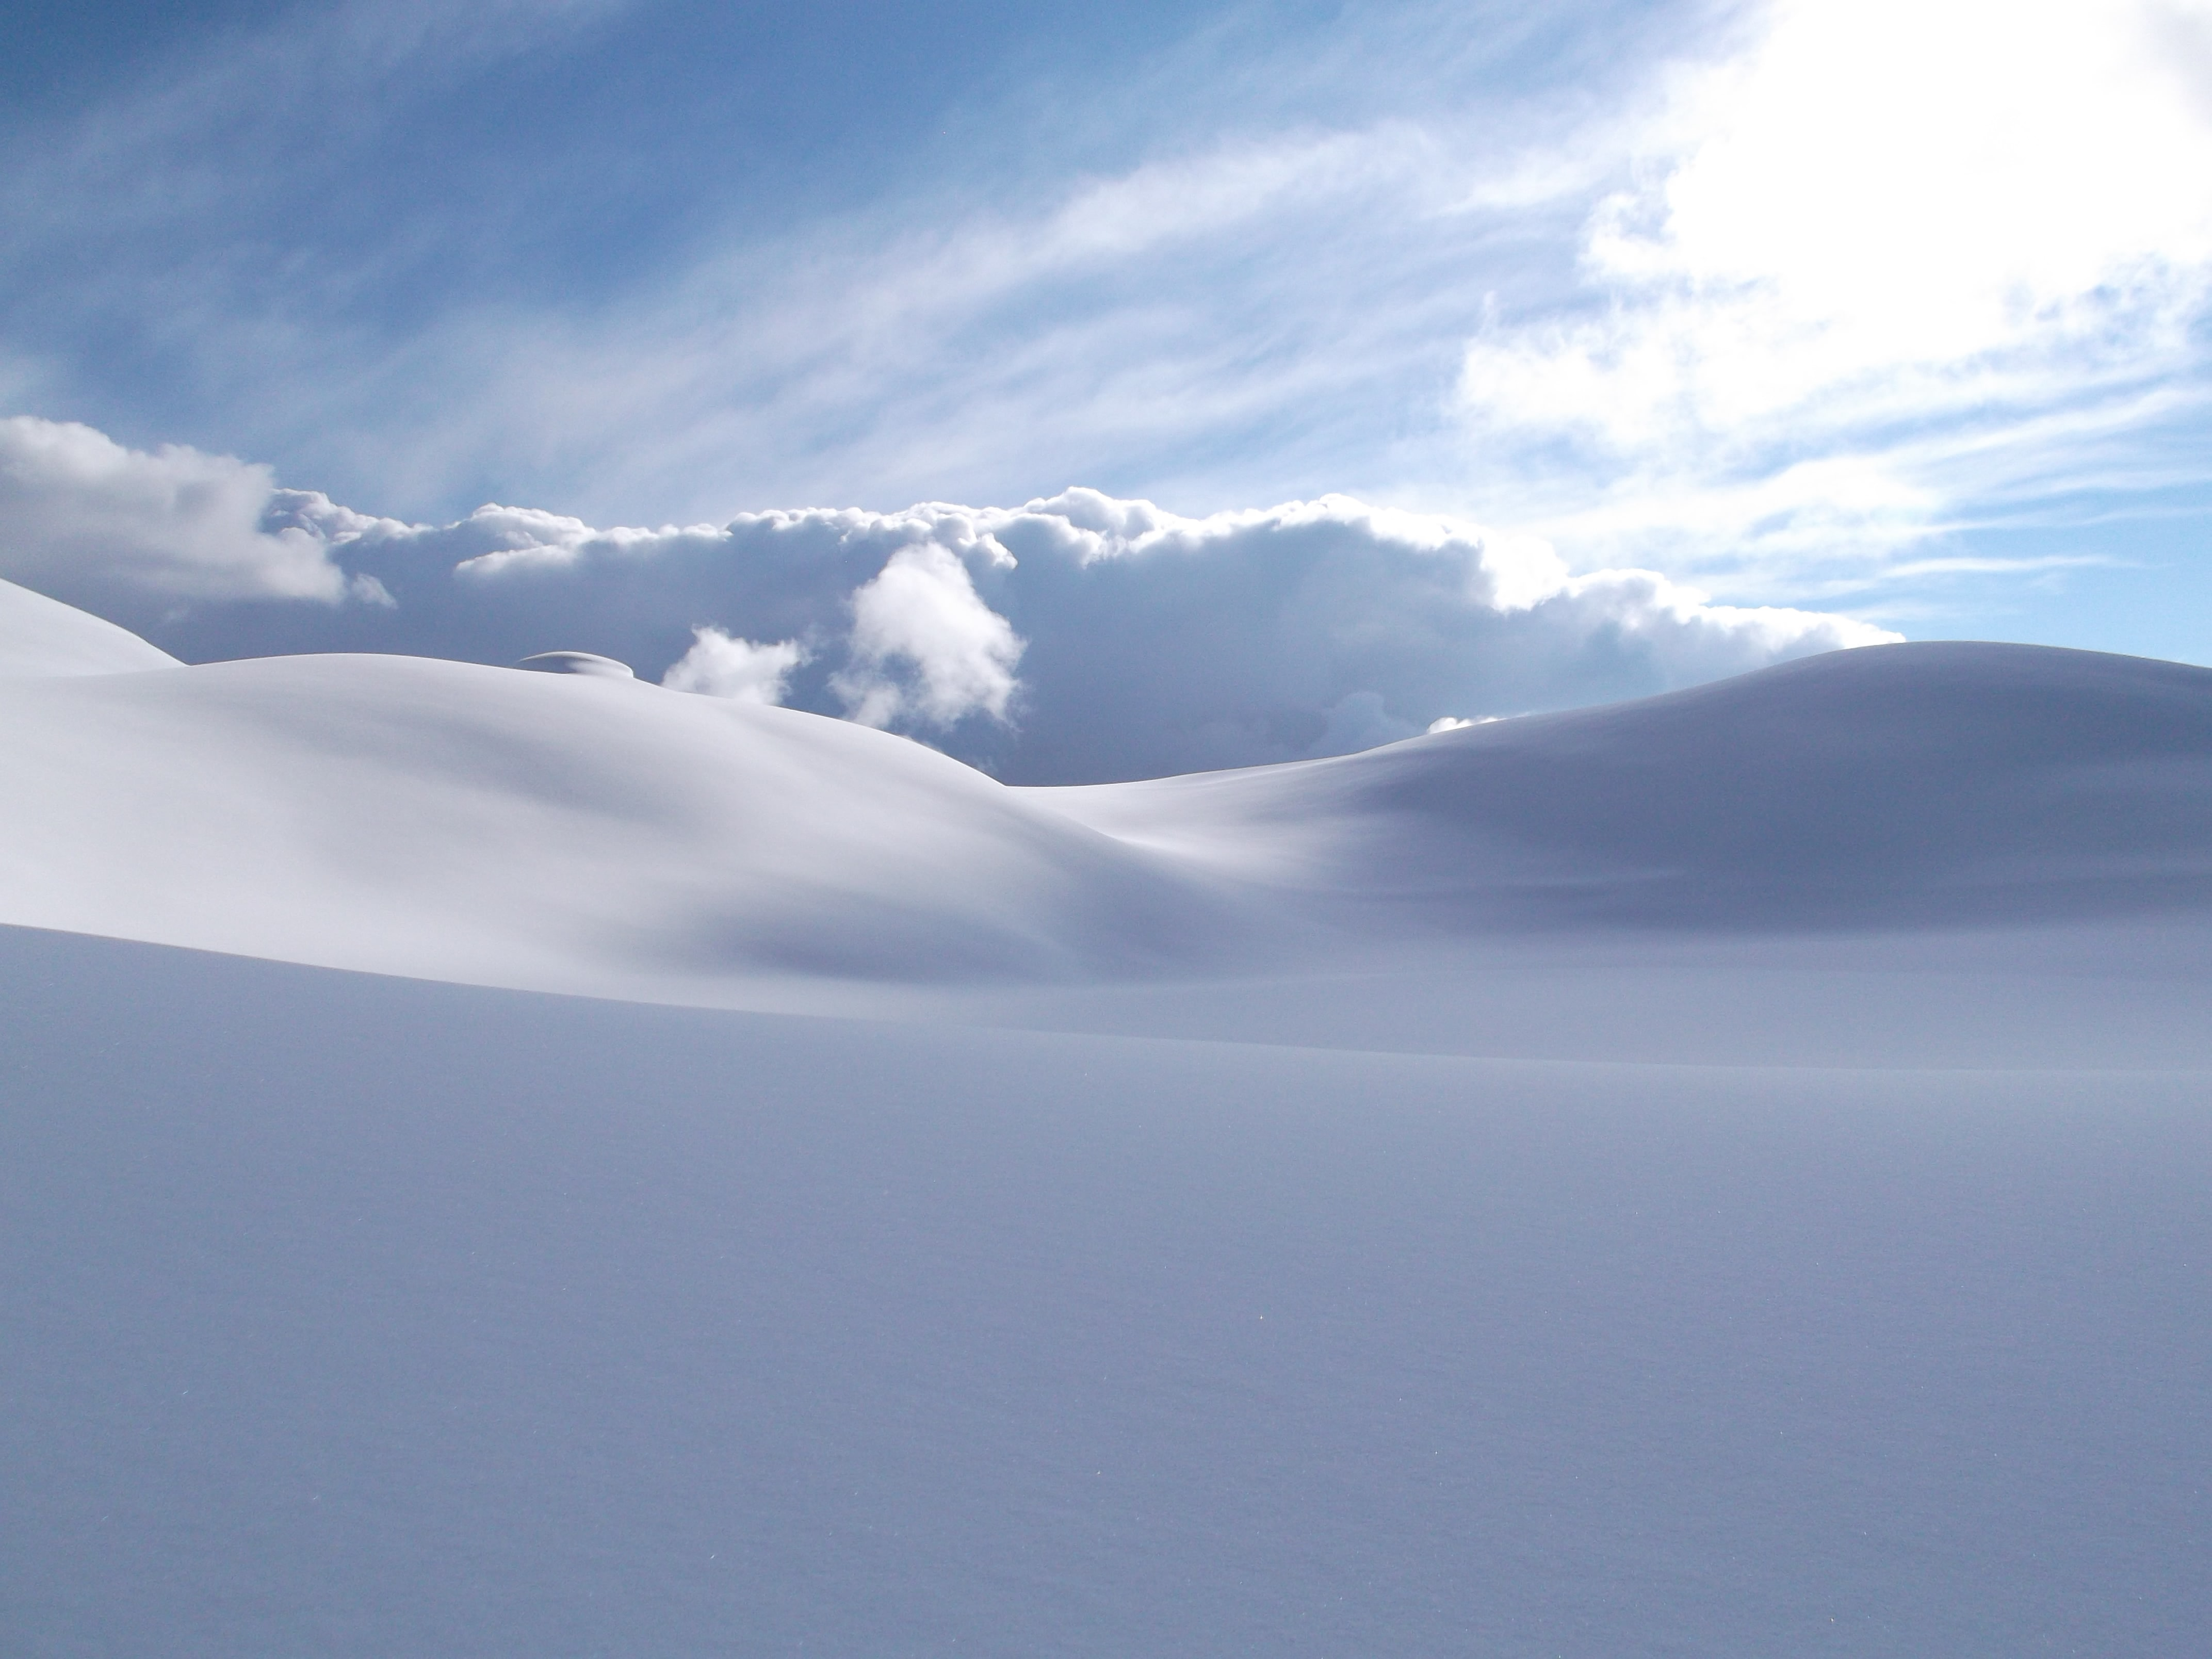 A cloudscape photograph from heavily snow covered mountains